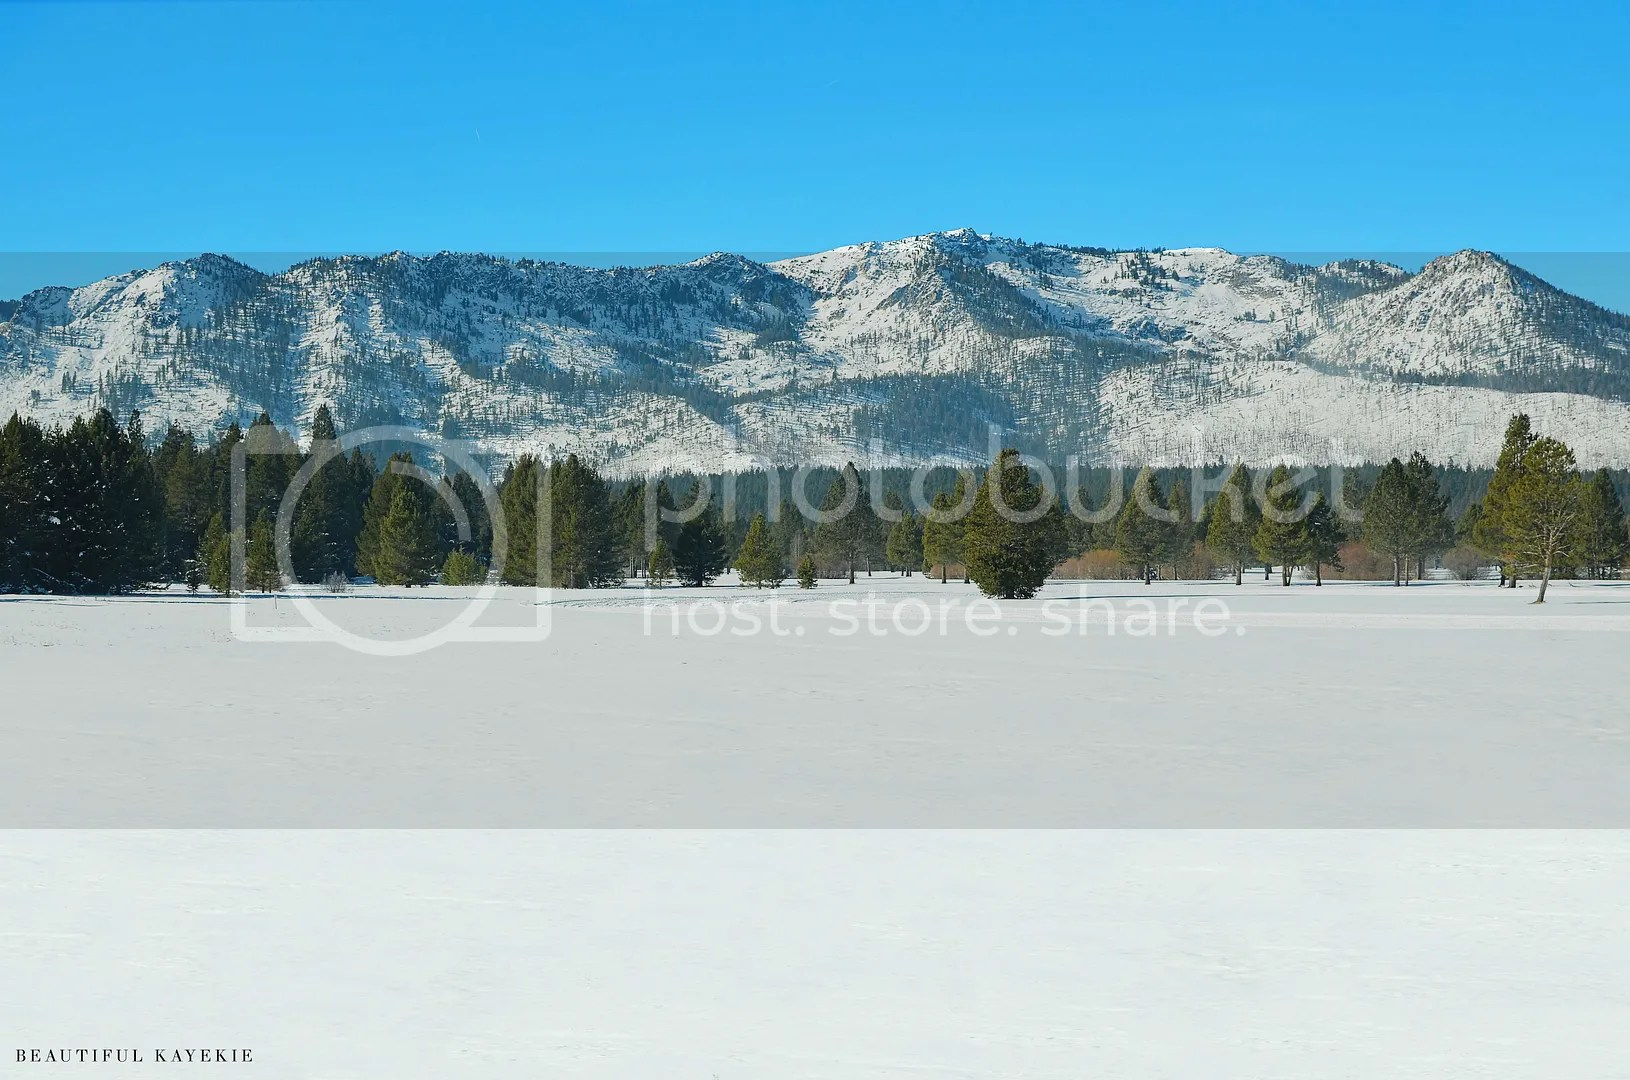 tahoe snow fields mountains